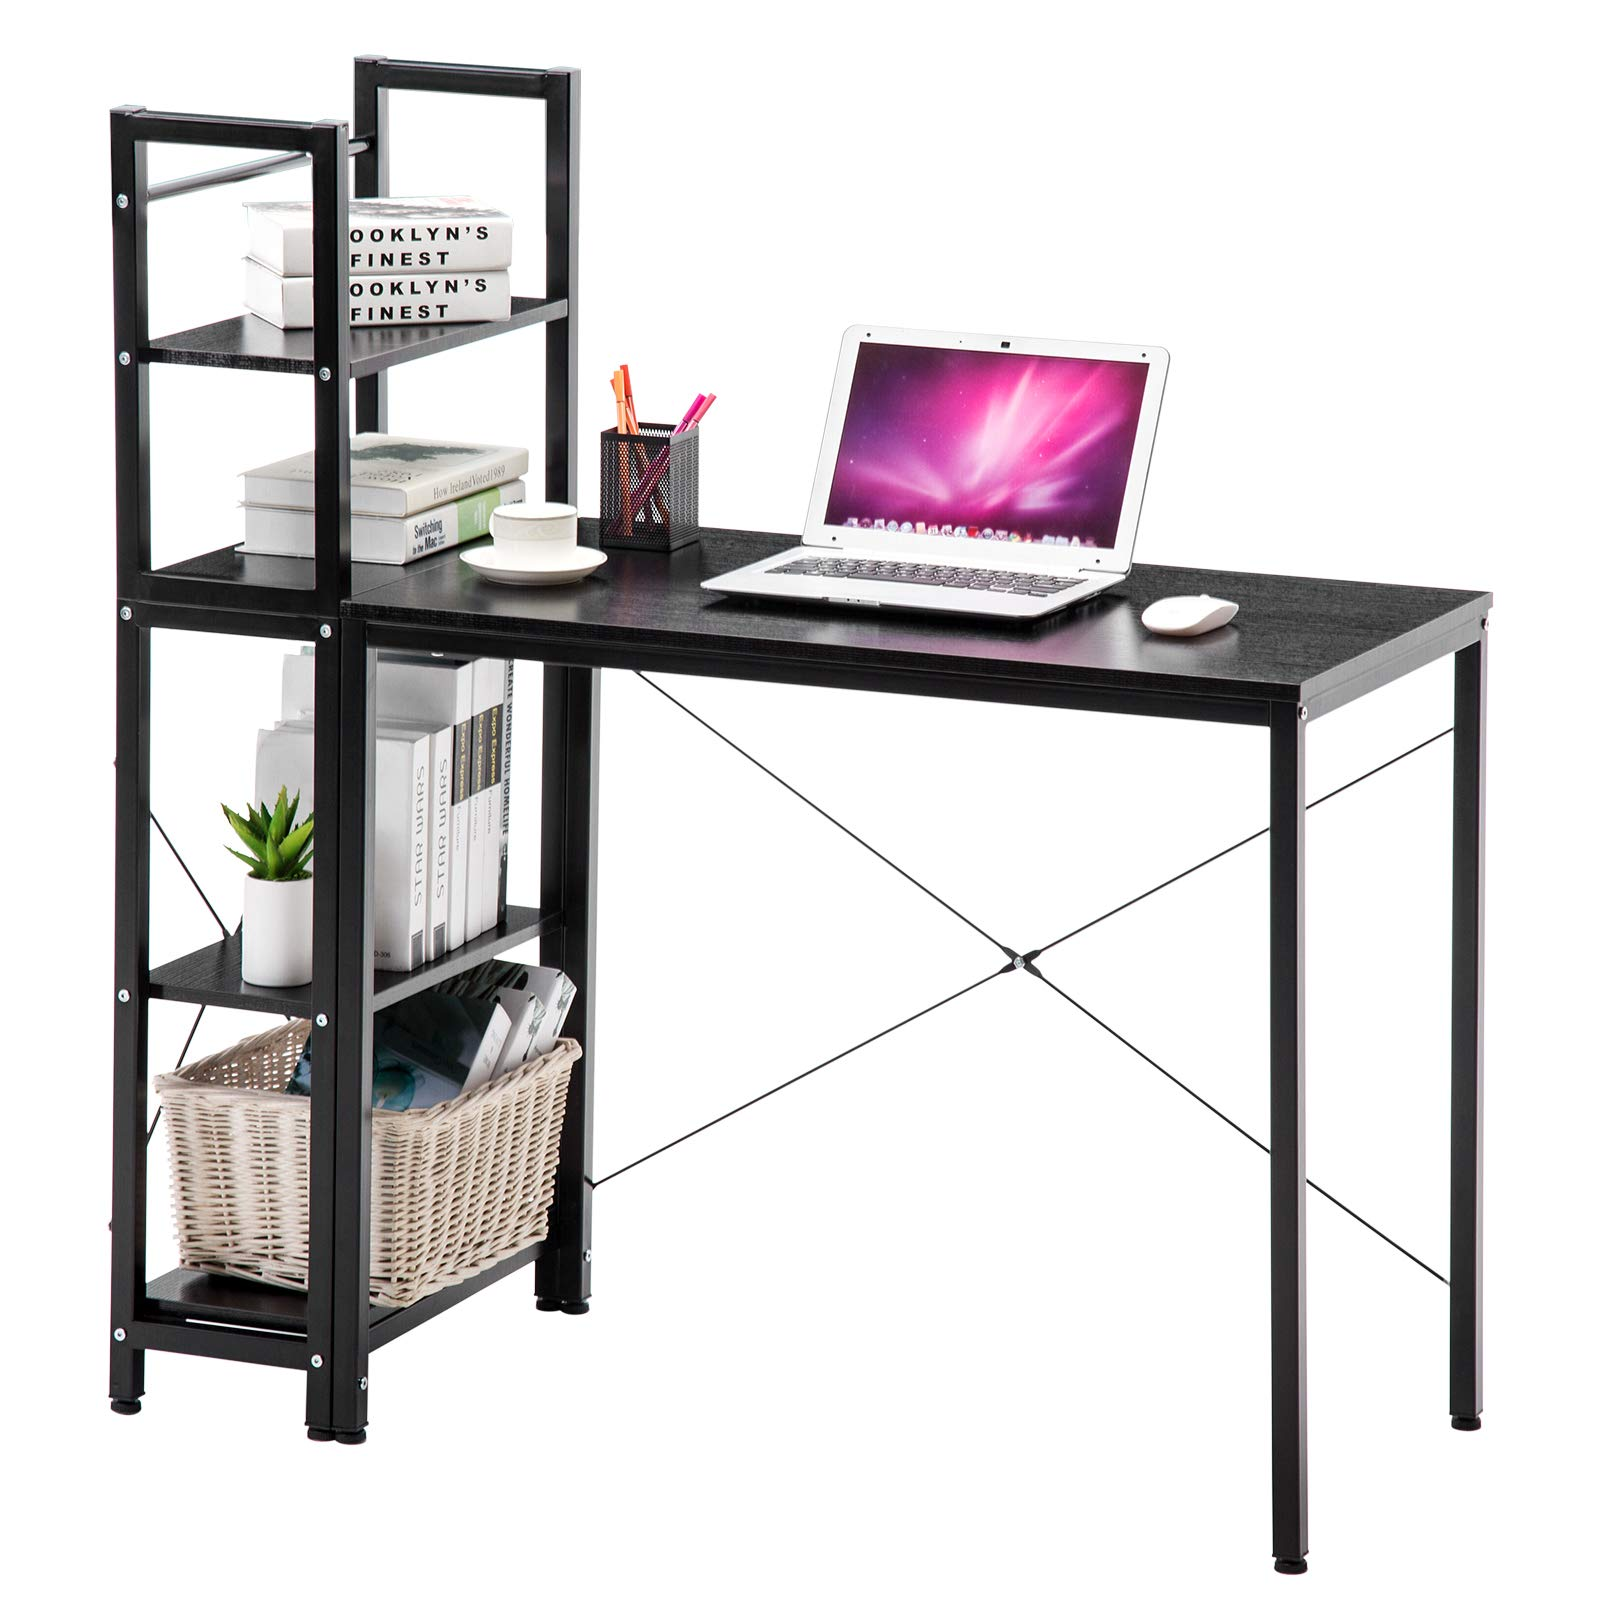 4-EVER Computer Desk with Shelves Modern Style Computer Table Variety of Display Office Table with 4 Tier Bookshelf Study Writing for Home Office Black